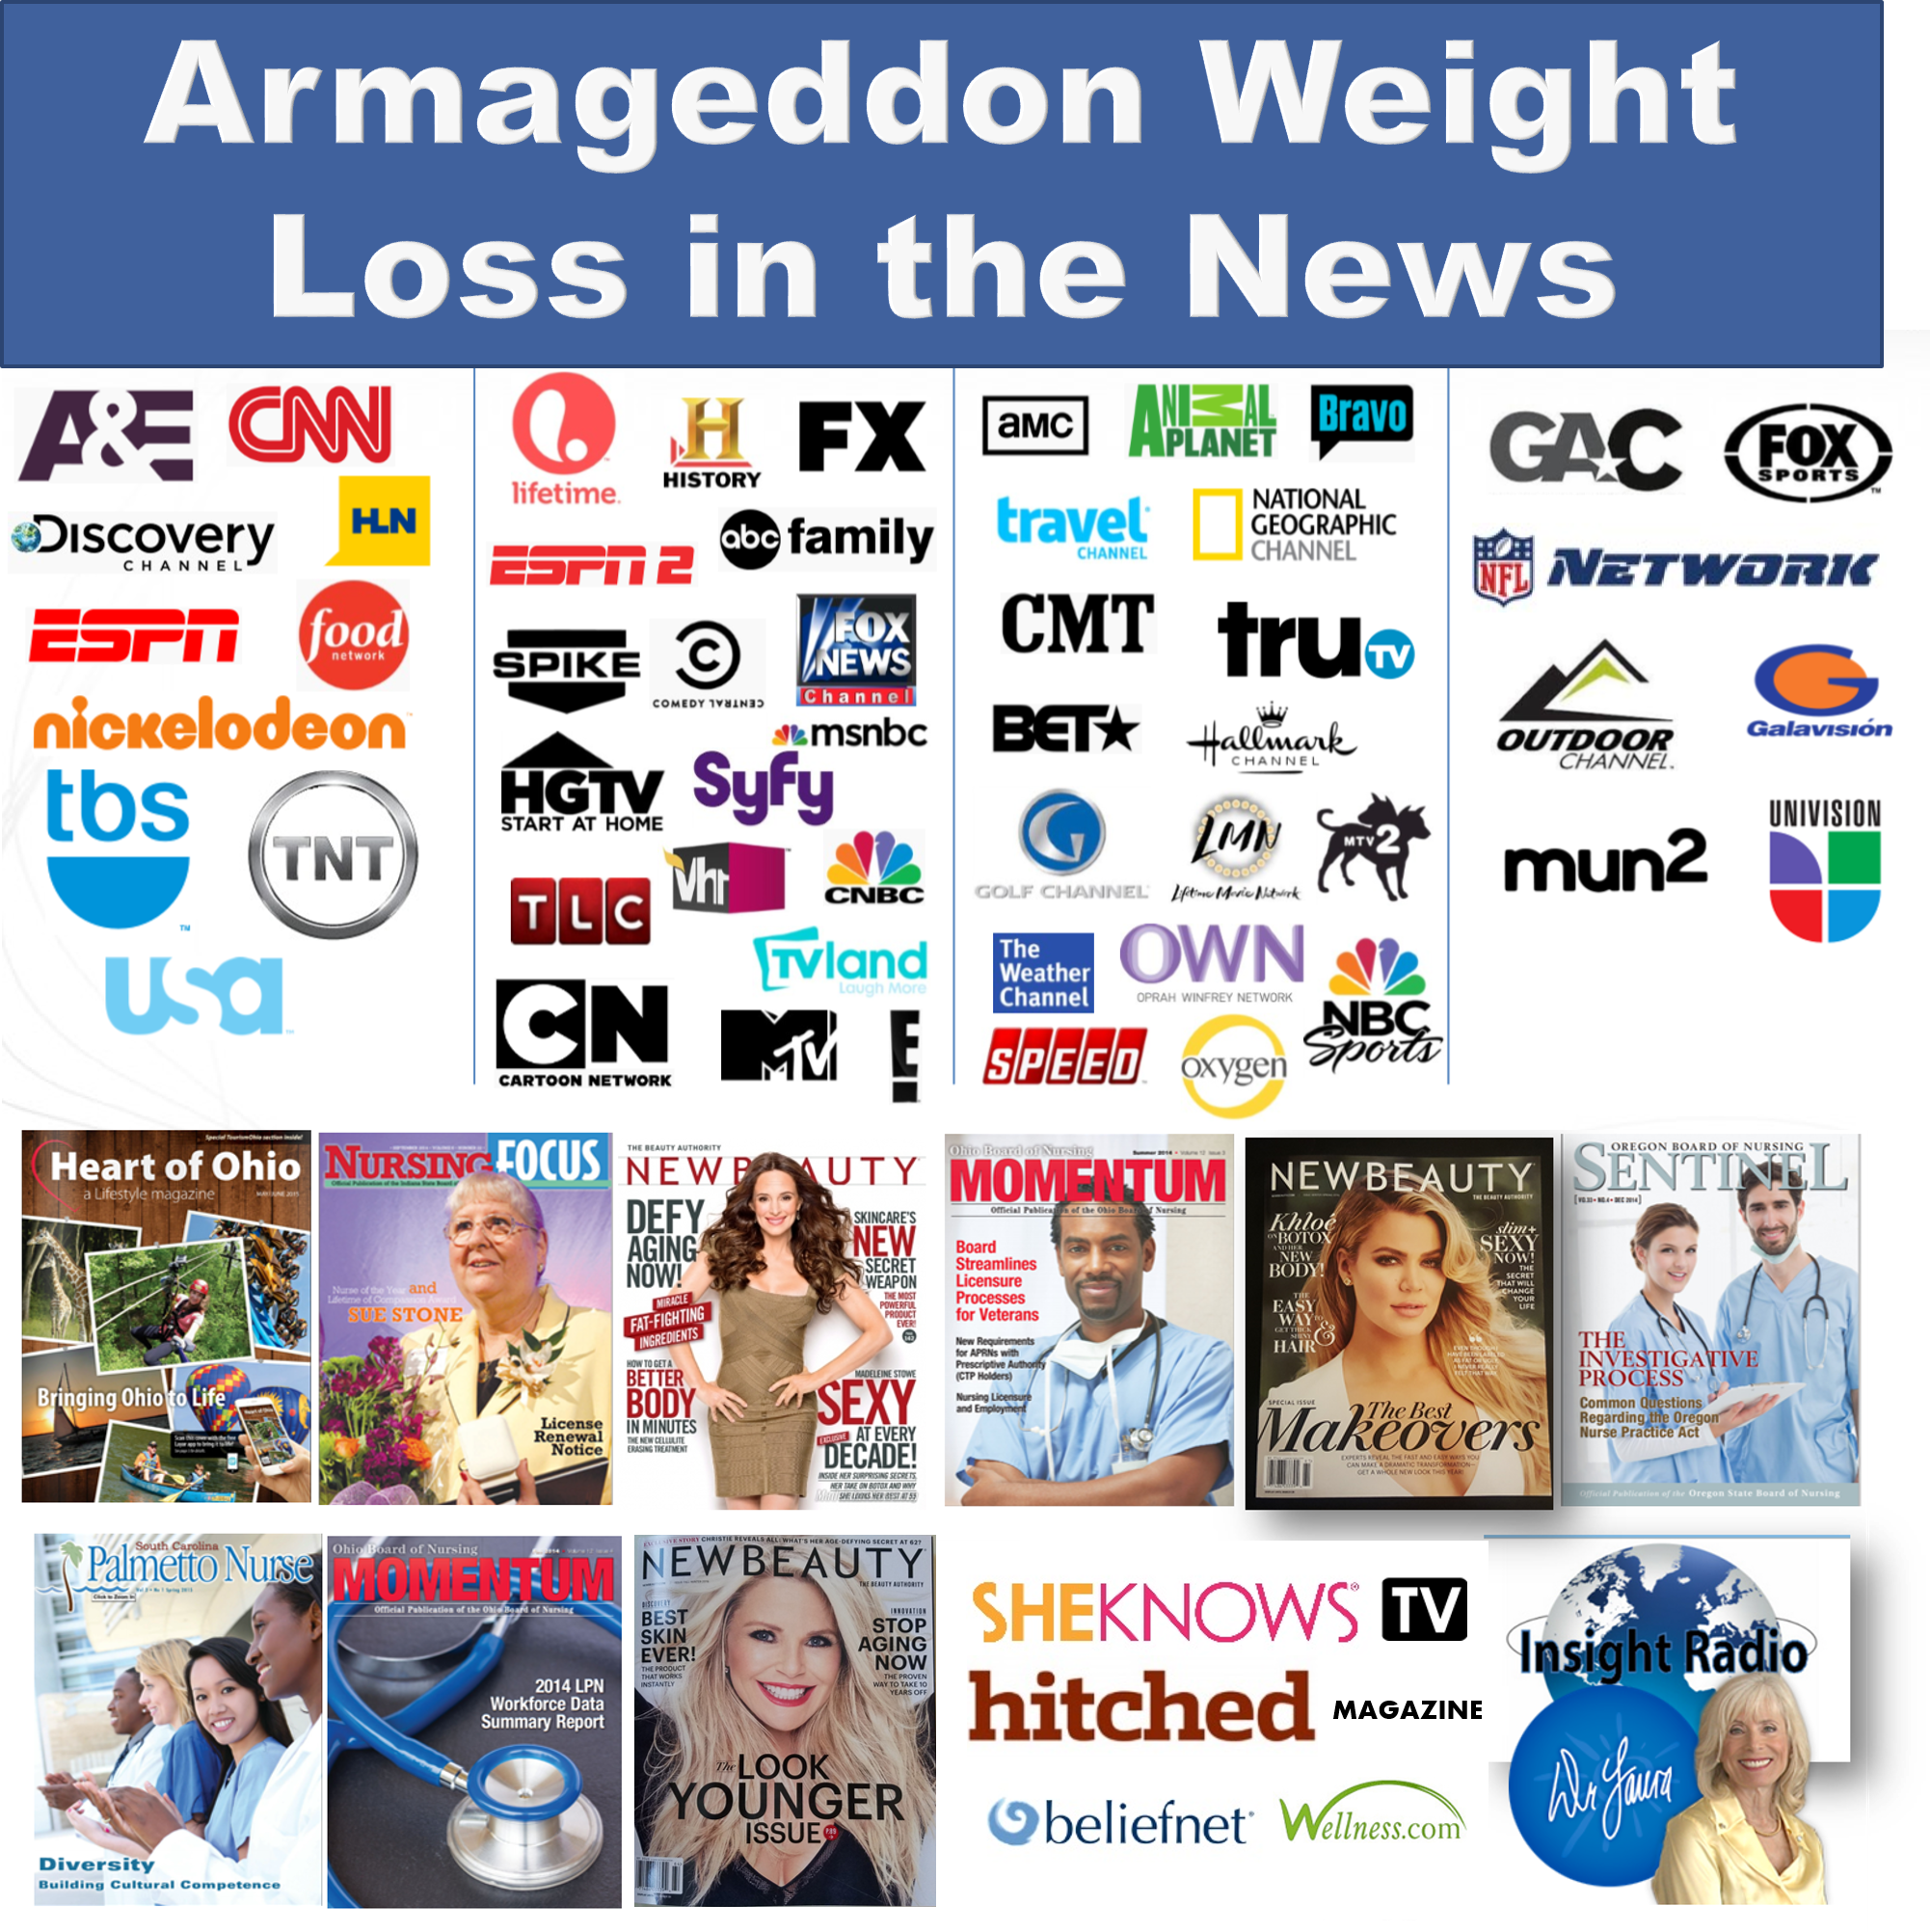 armageddon-weight-loss-best-weight-loss-dvd-for-women-and-men-best-exercise-dvd-for-women-press-pagepng